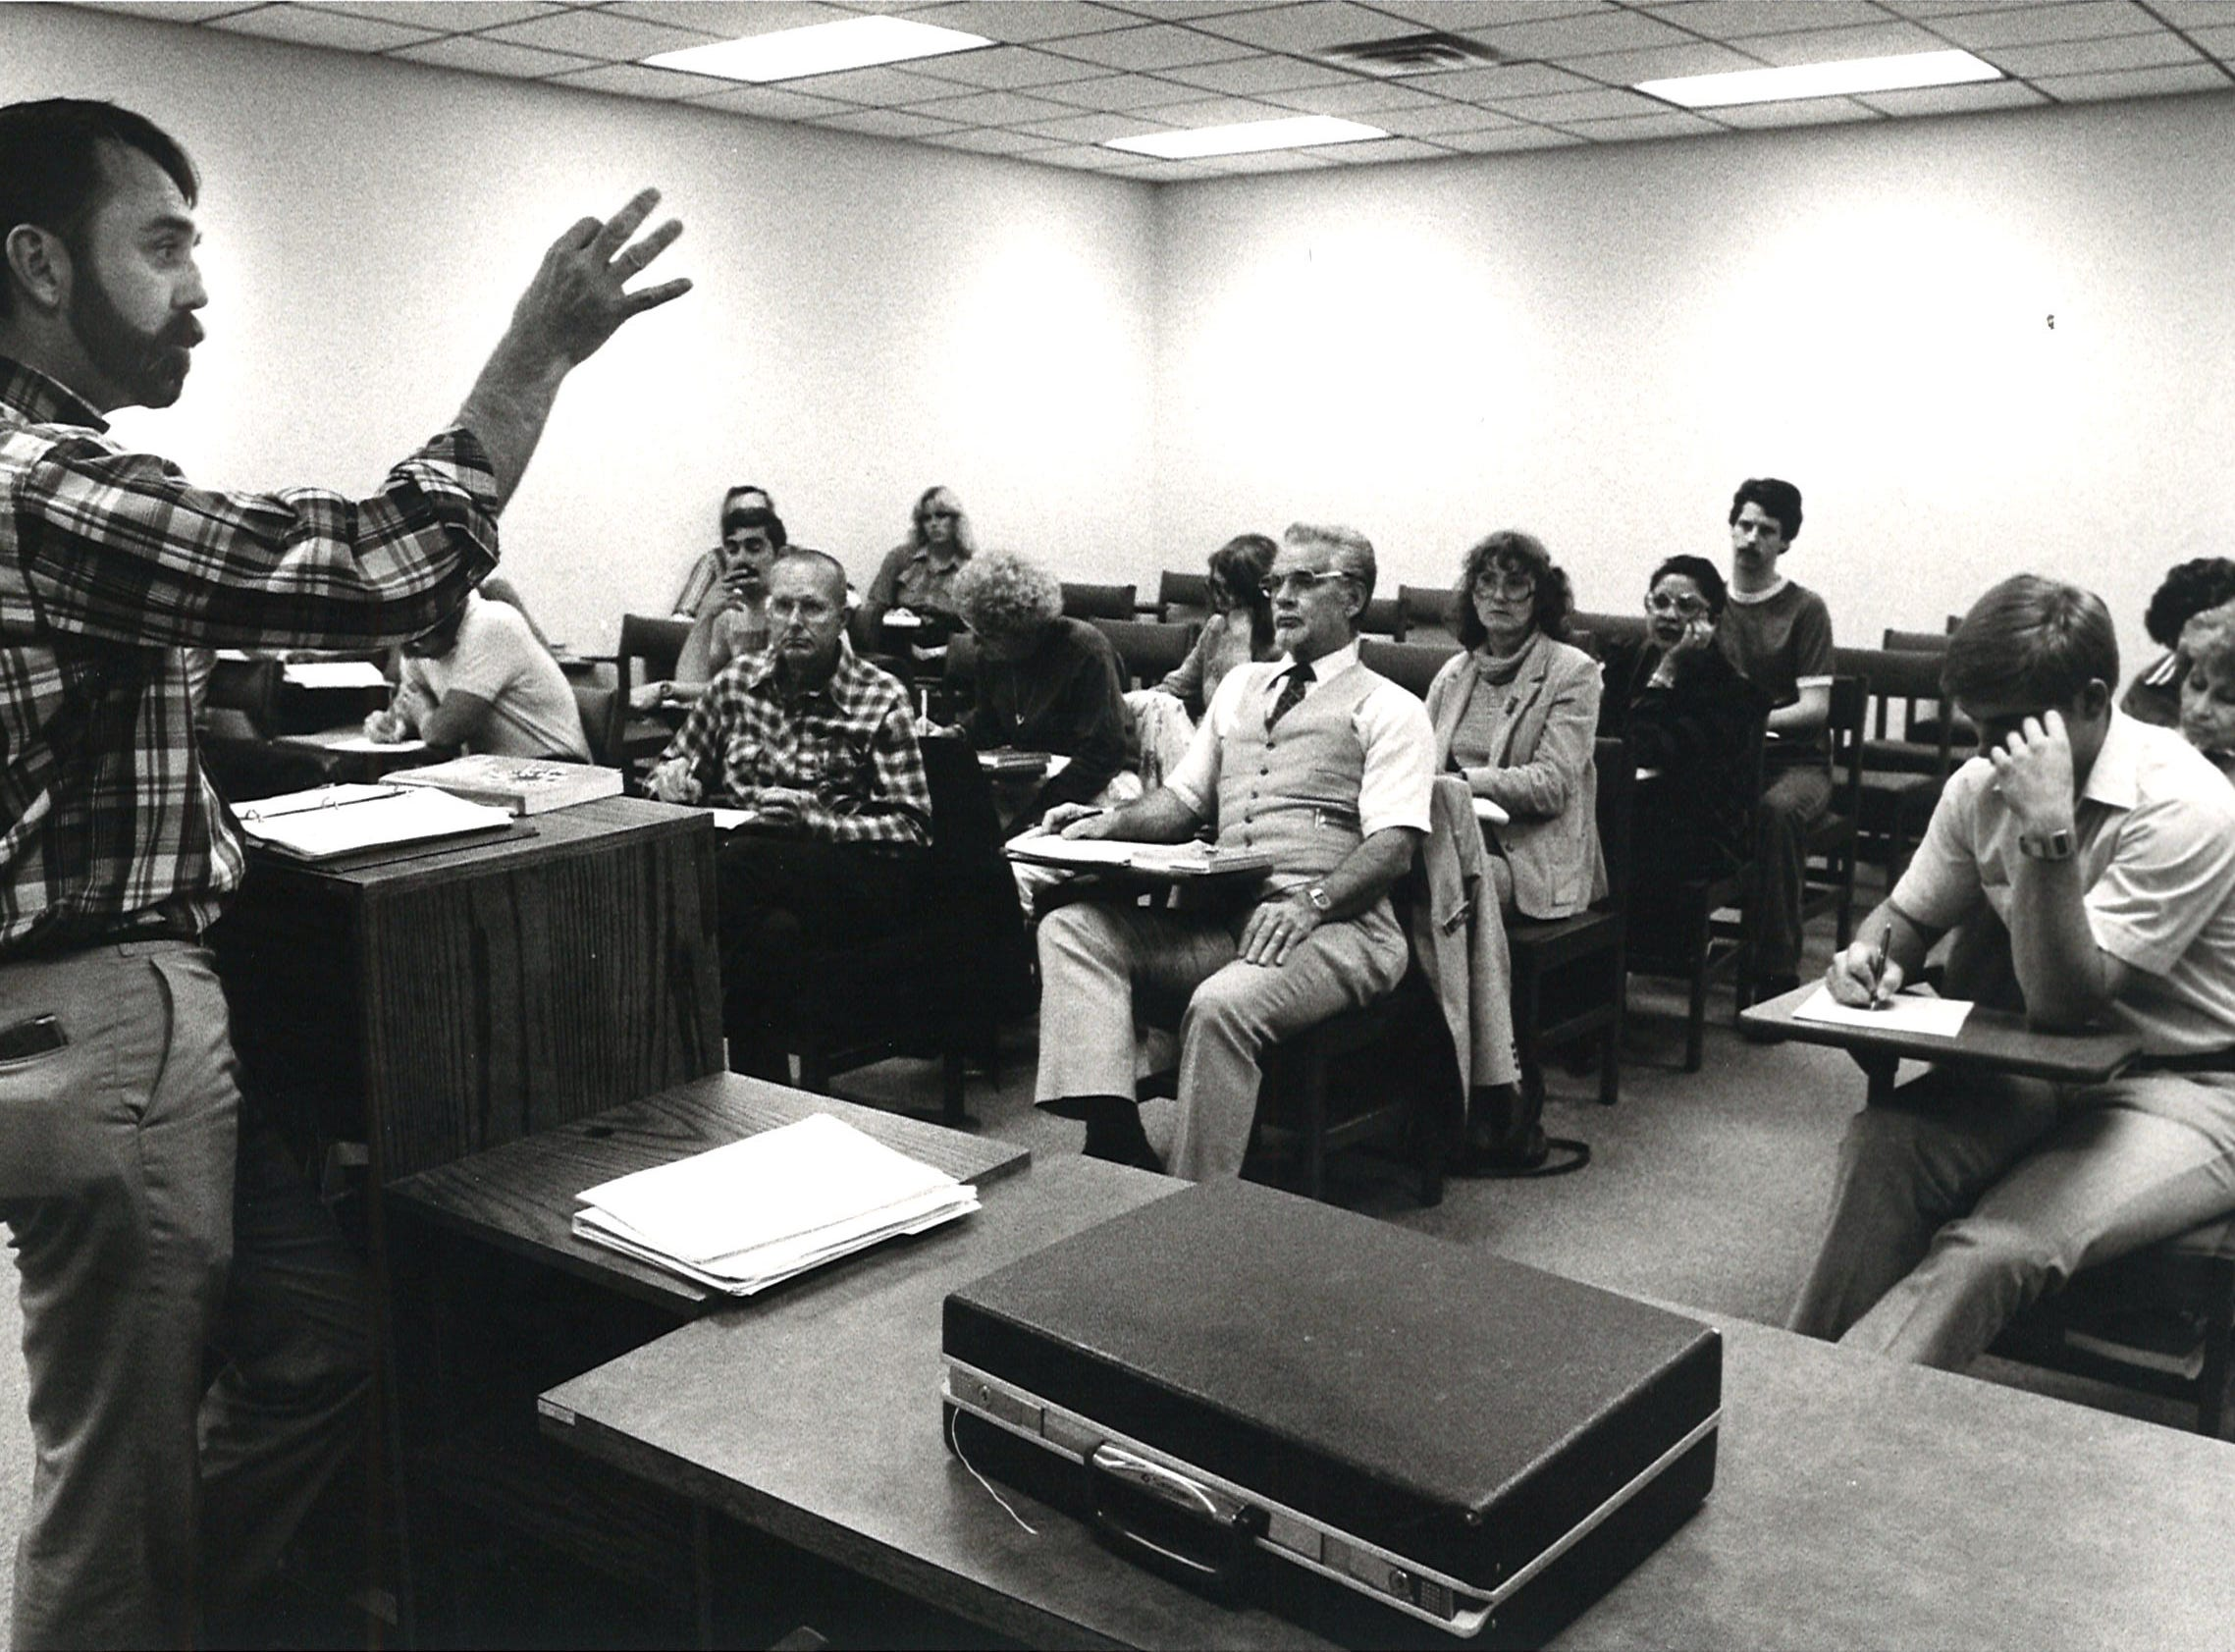 Professor of Communications John Wilson lectures during his Nonverbal Communications class on April 7, 1983 at Corpus Christi State University.